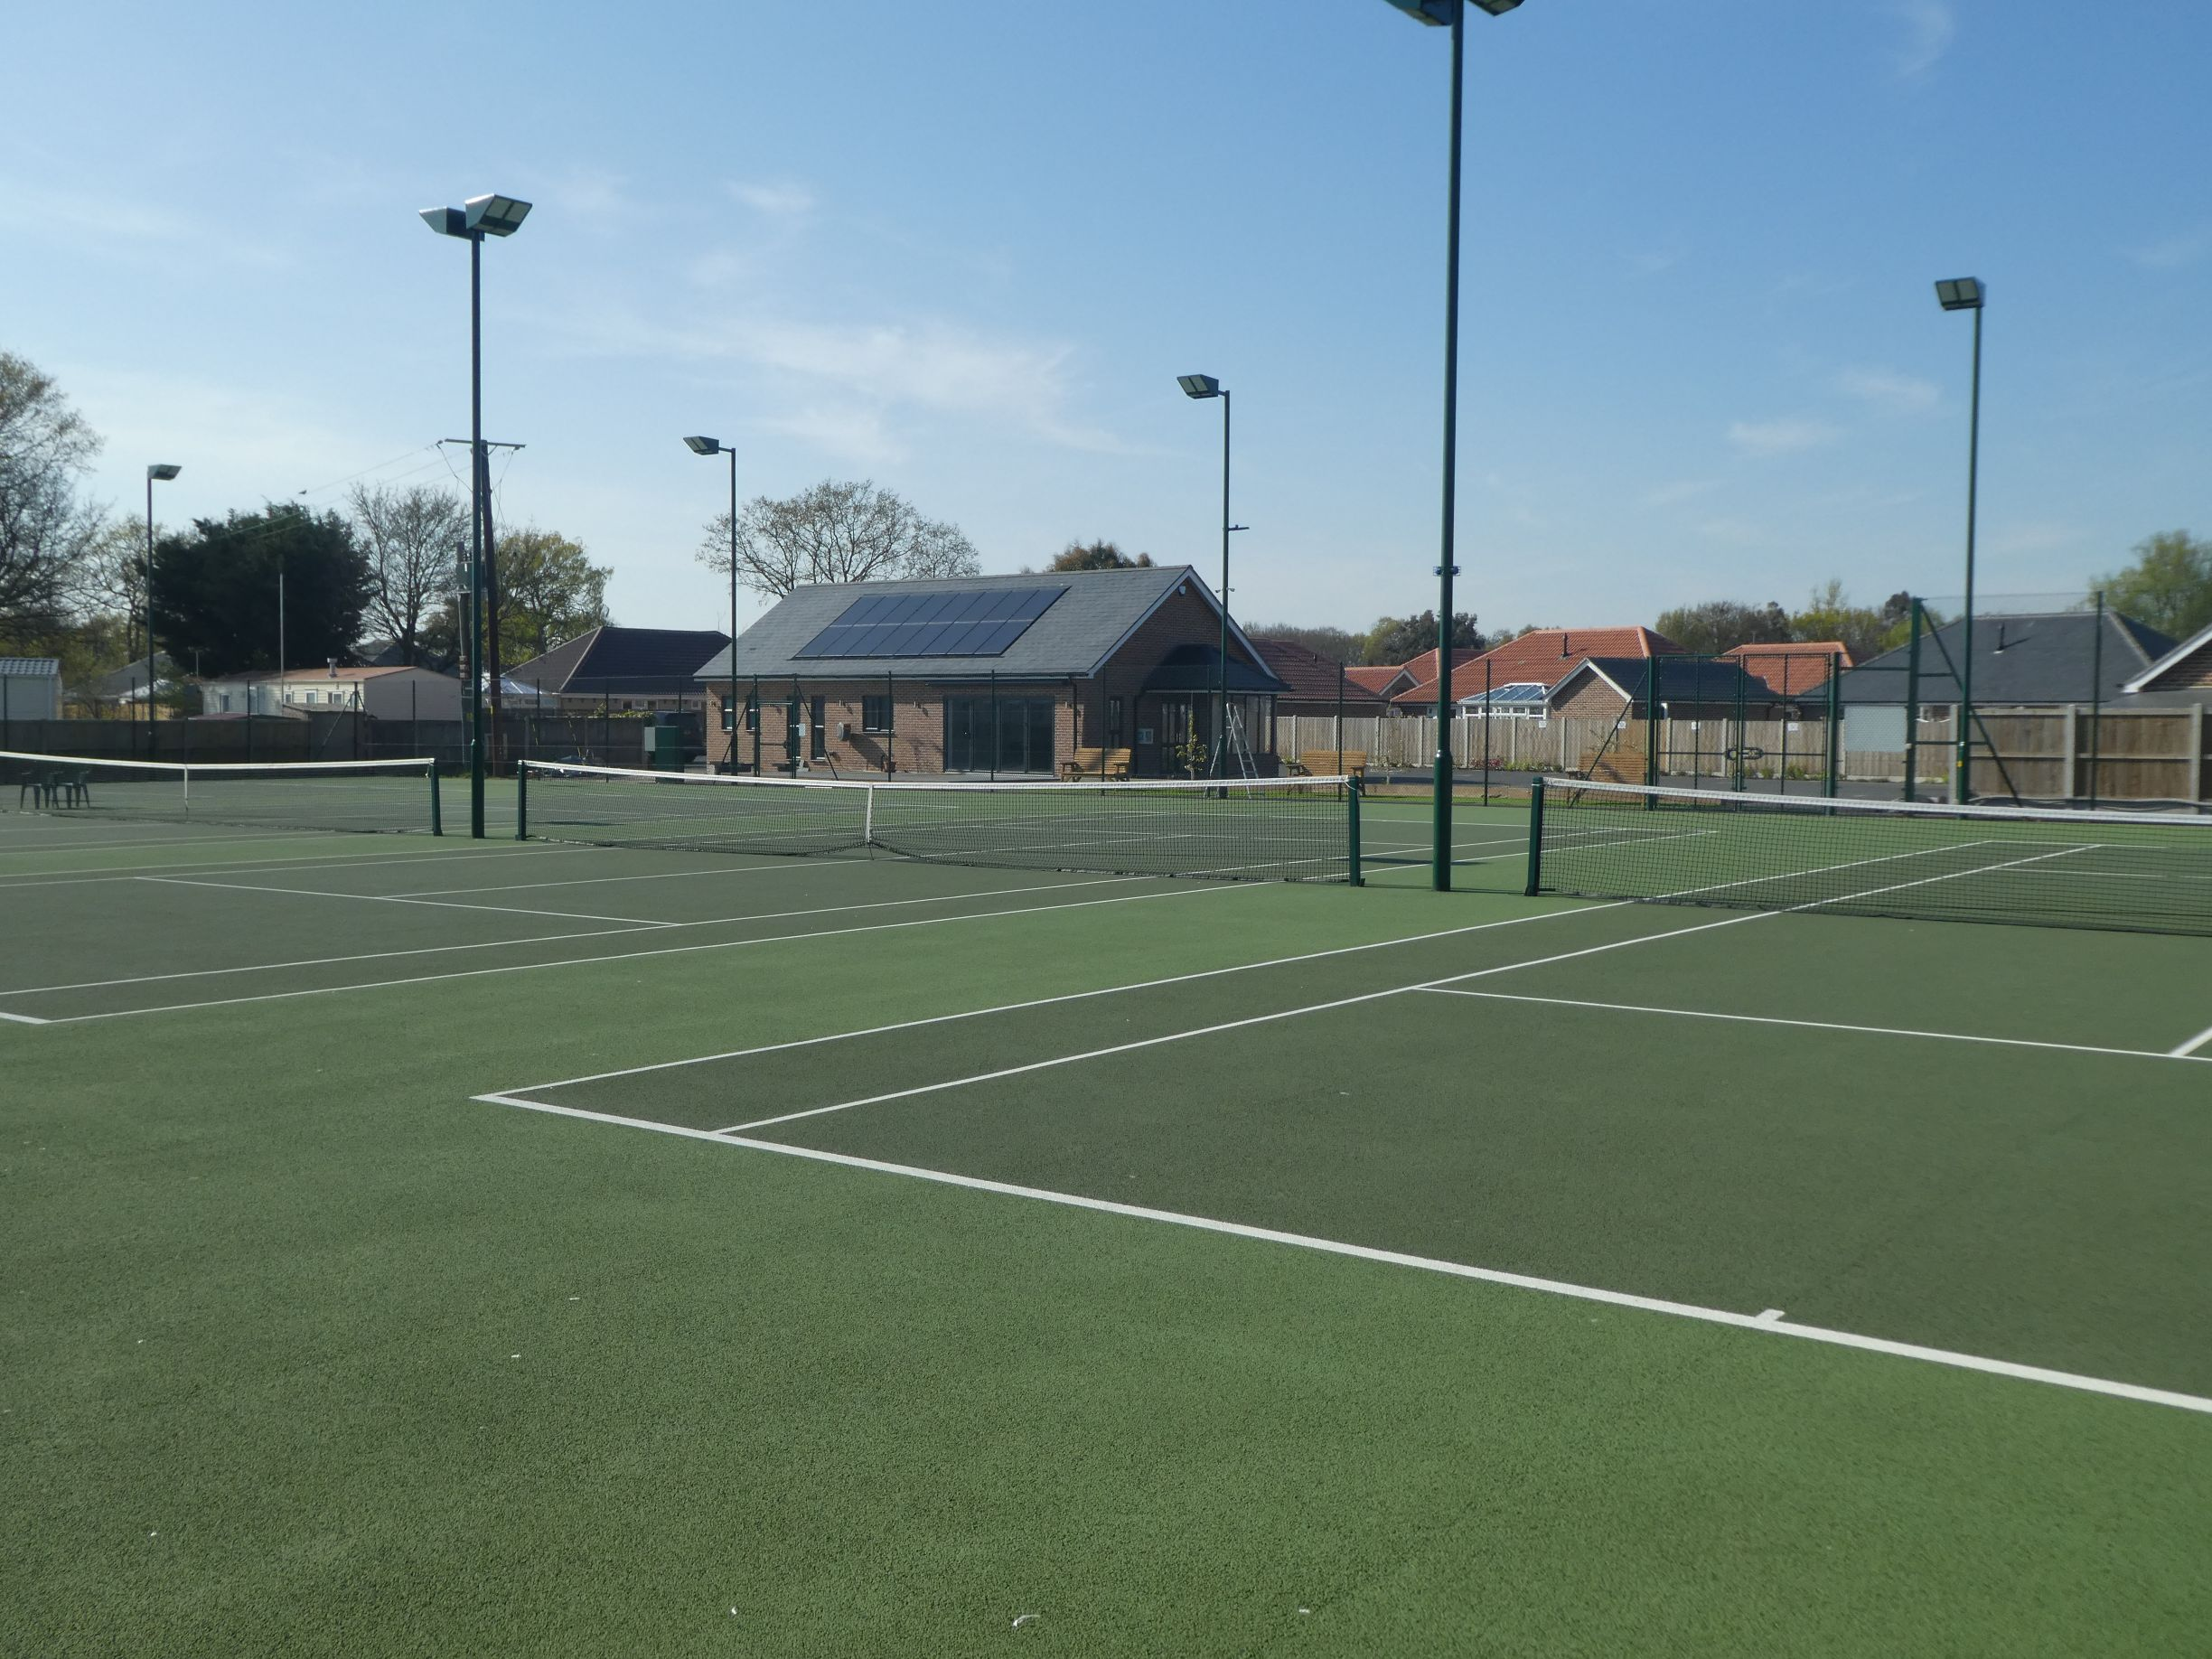 Thanks to their durability, asphalt surfaces are one of the best choices for minimal tennis court maintenance requirements